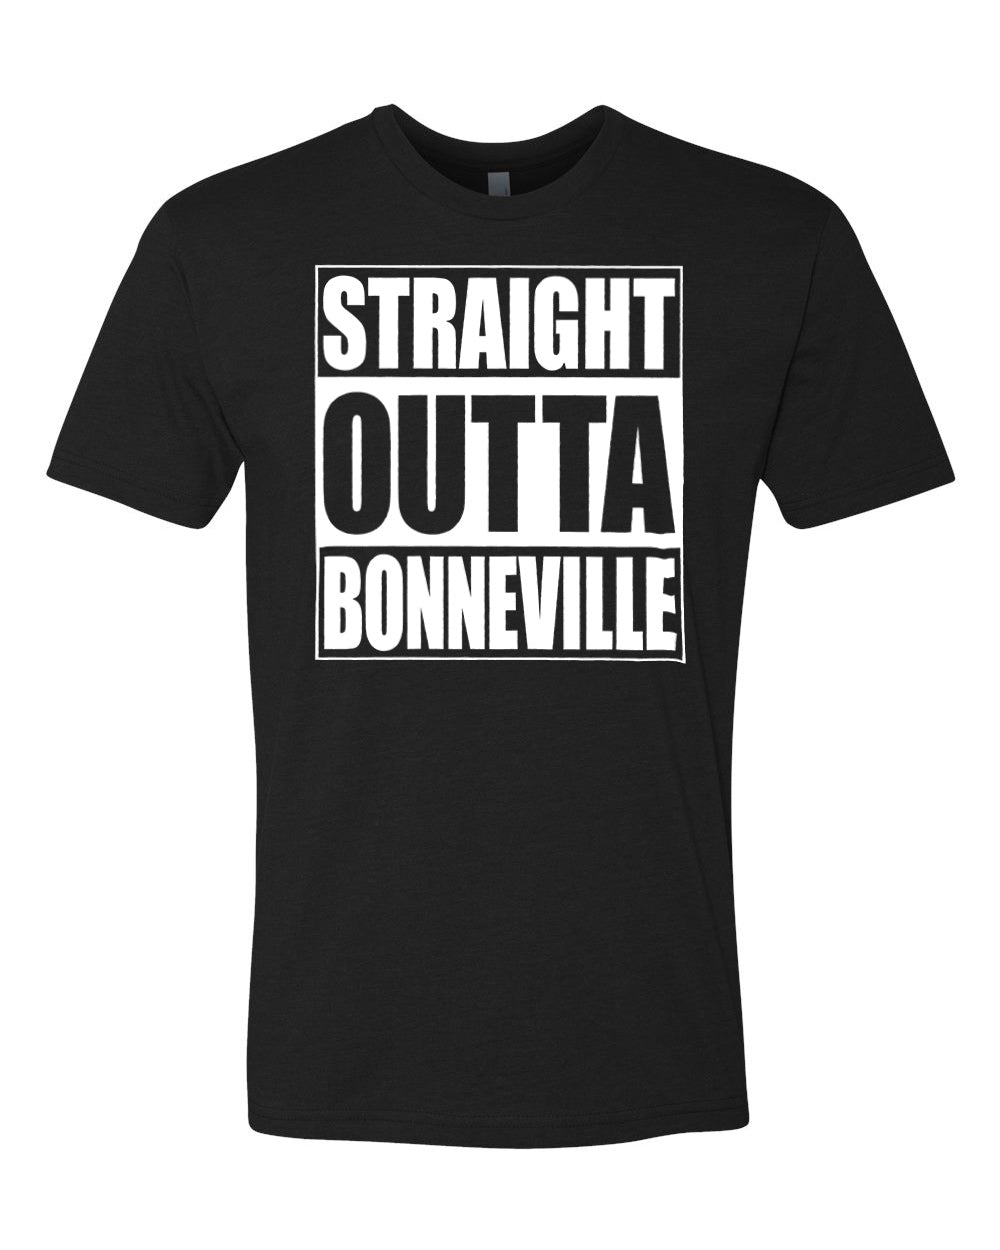 BONNEVILLE HS – Next Level Fitted Crew Tee – Straight Outta Bonneville (White/Black)